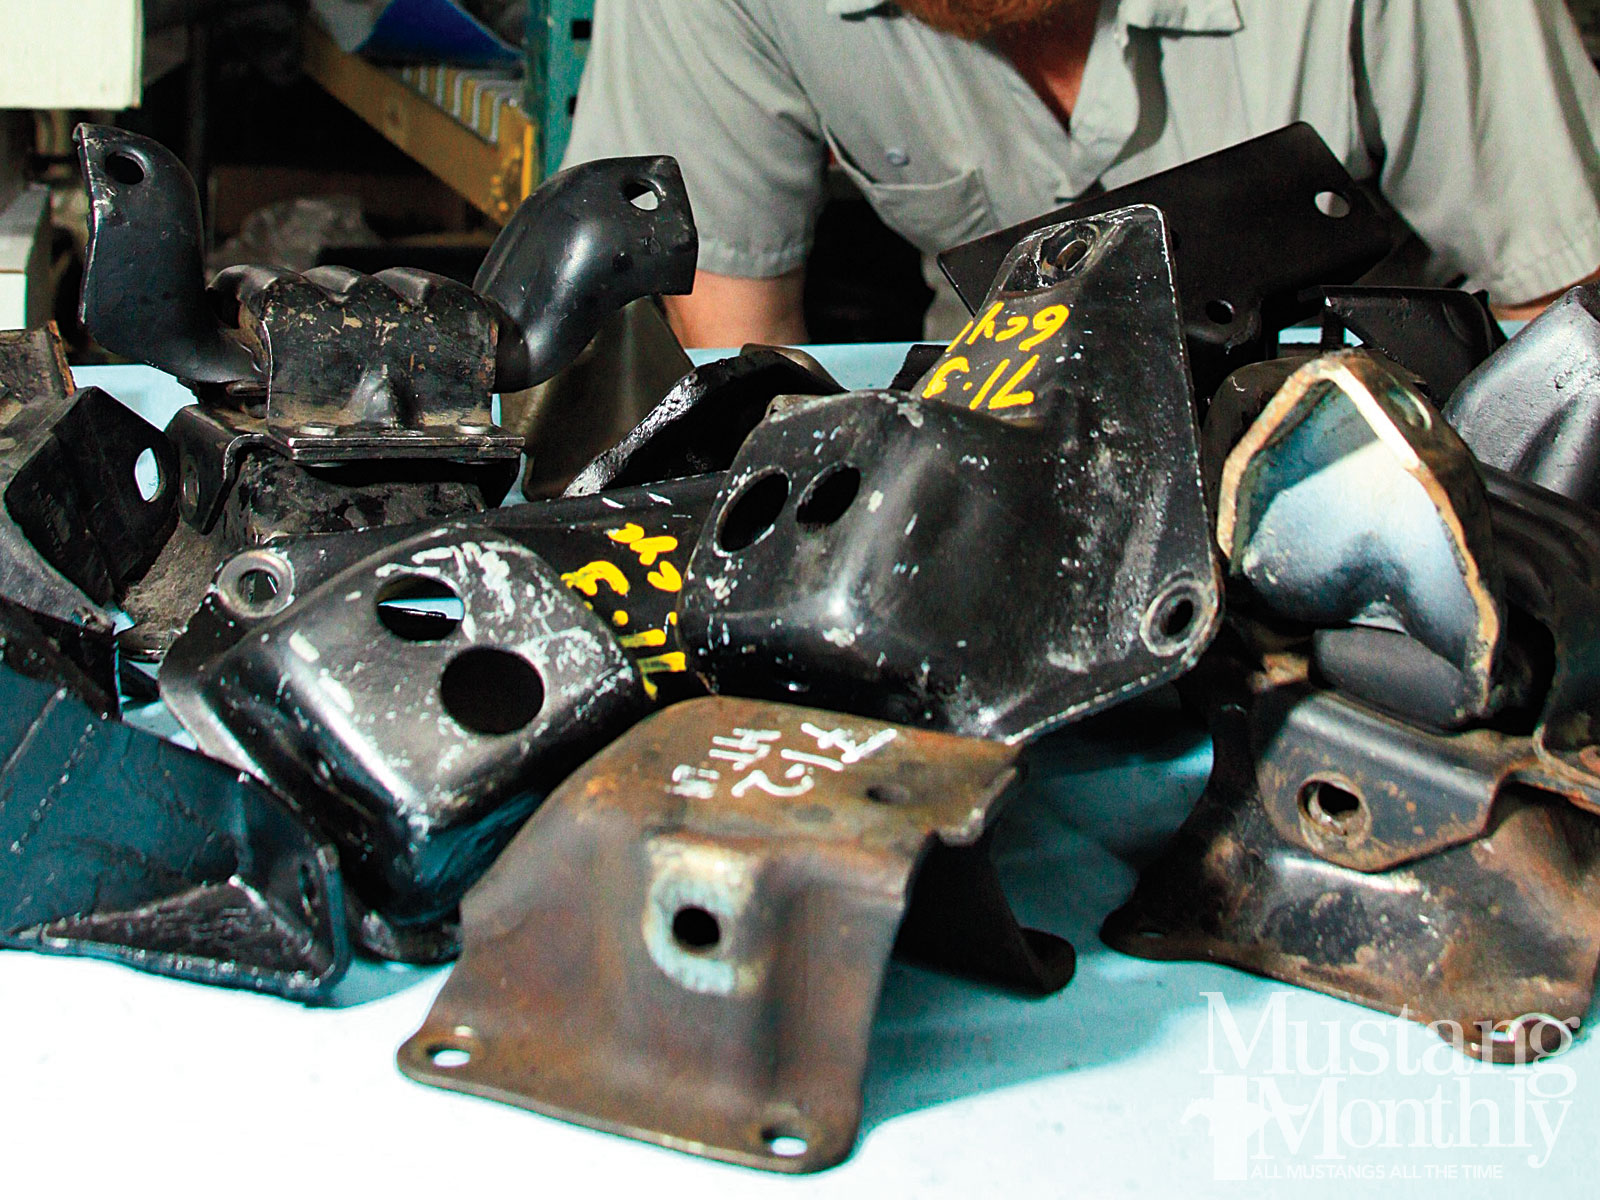 how to identify and choose engine mounts mustang monthly magazine Turbo Engine Bay engine mounts exist to provide support and isolate vibration as the mustang evolved over the past half century, engine and driveline mount technology has